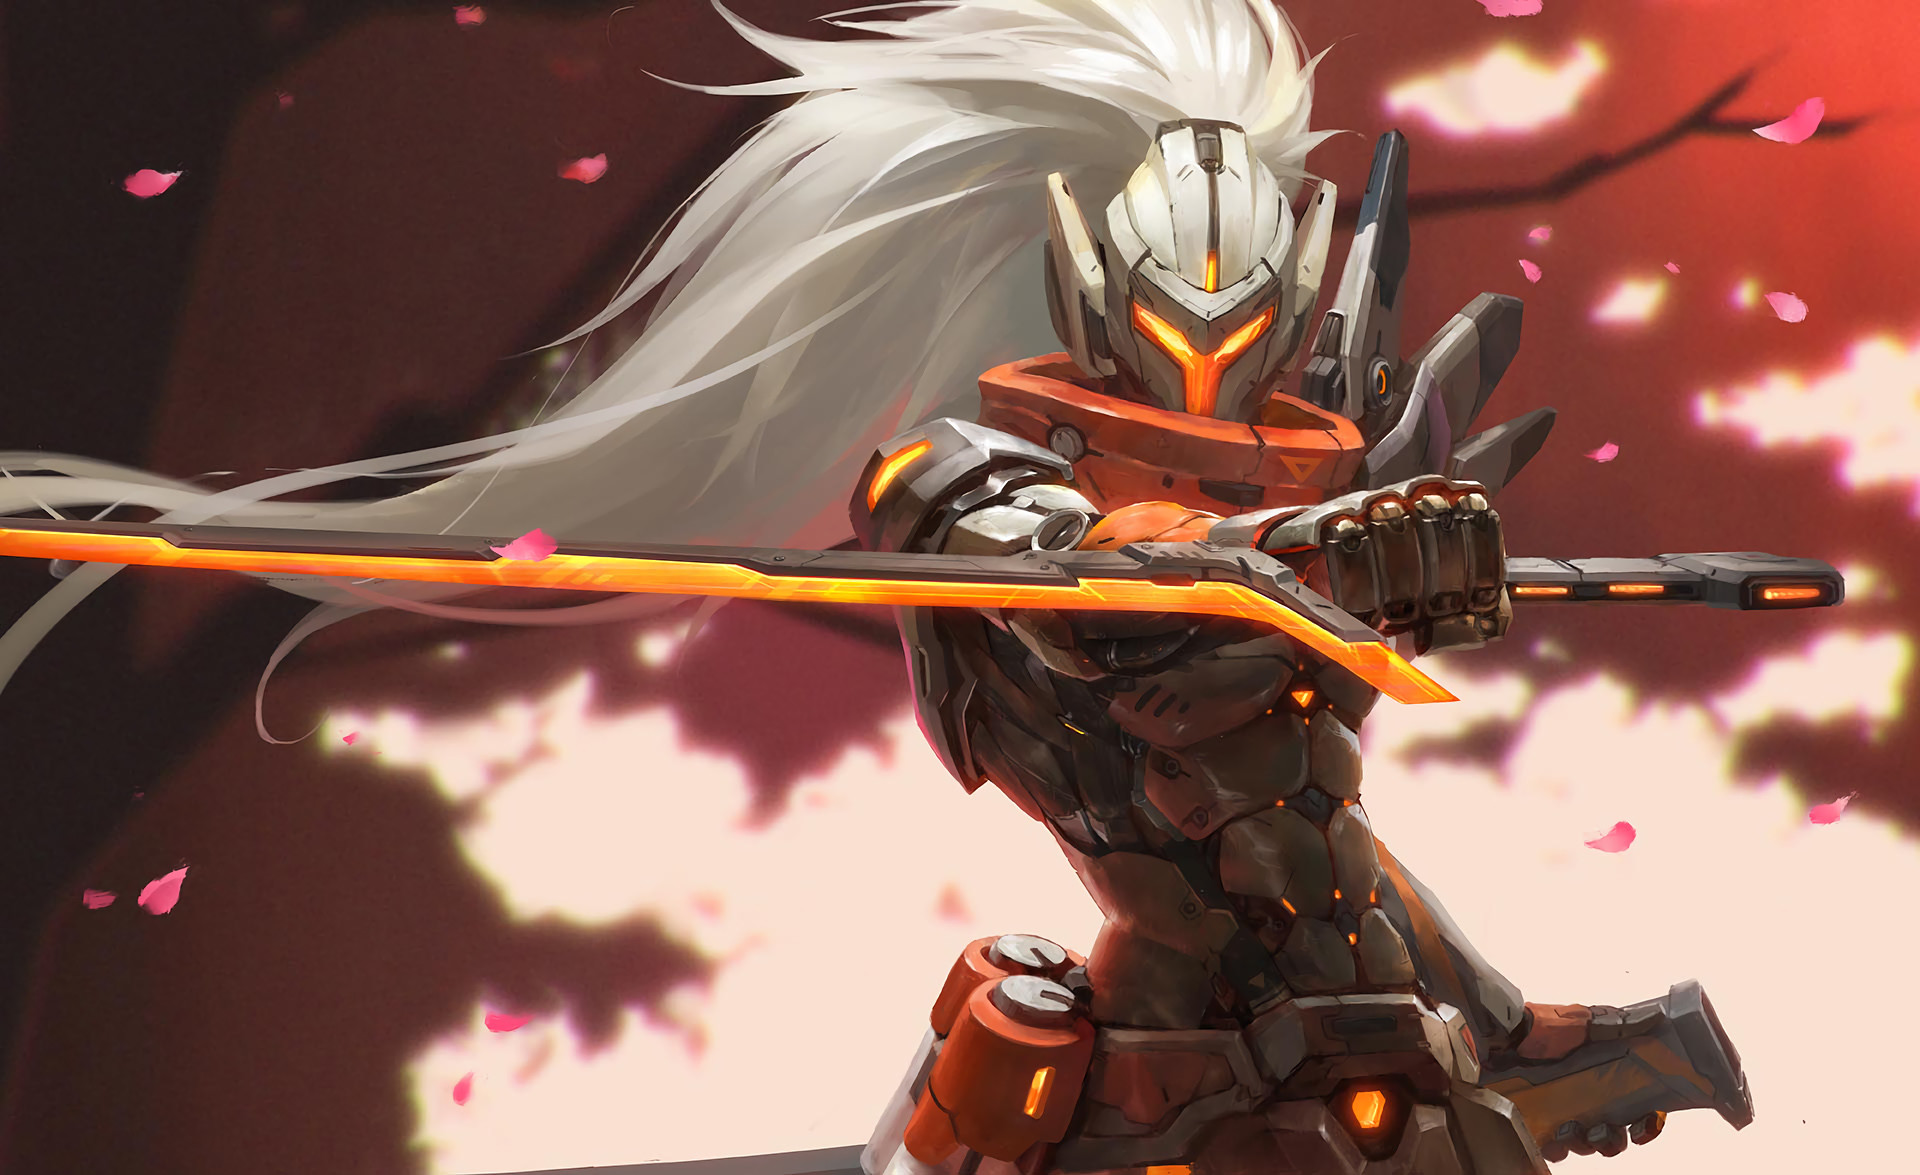 1920x1175 PROJECT Yasuo by 穆也菌 HD Wallpaper Background Fan Art Artwork League of Legends  lol